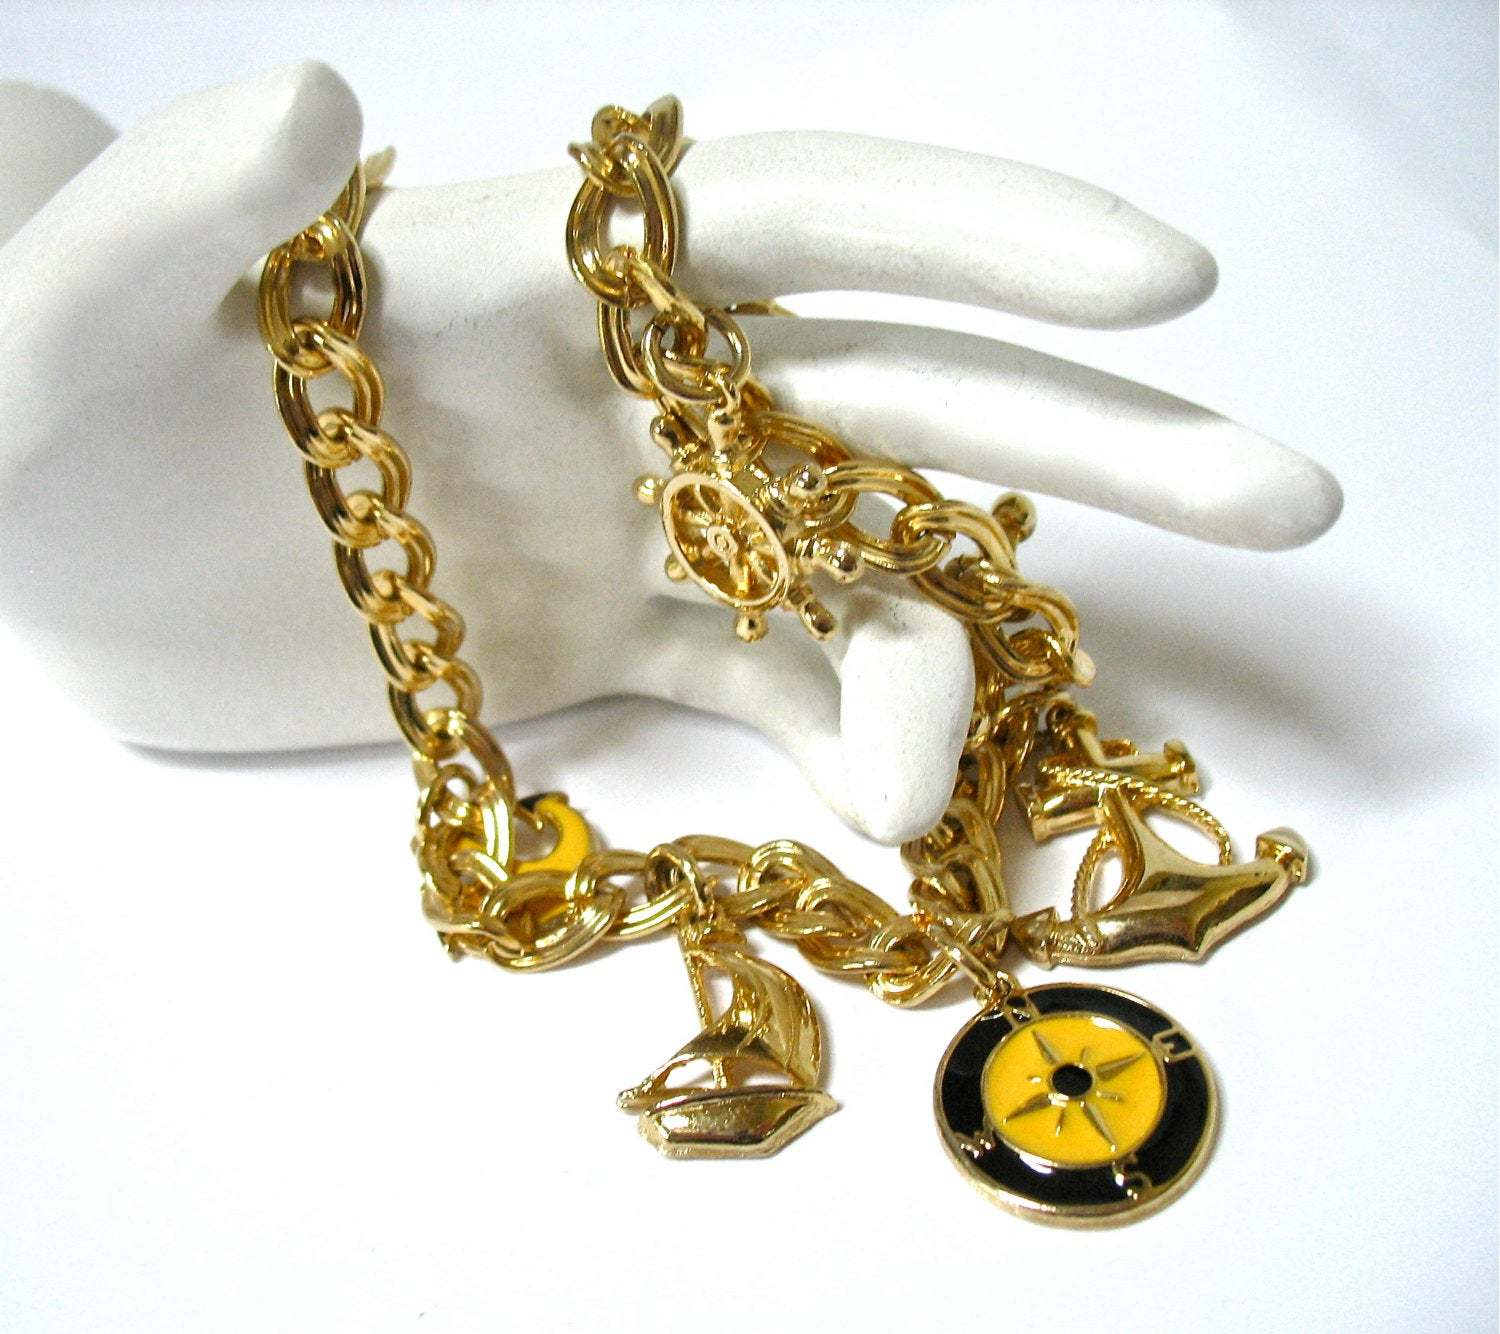 Charm Necklace, Nautical Charms, Signed Germany, 1980's, Sailboat, Anchor, Boati